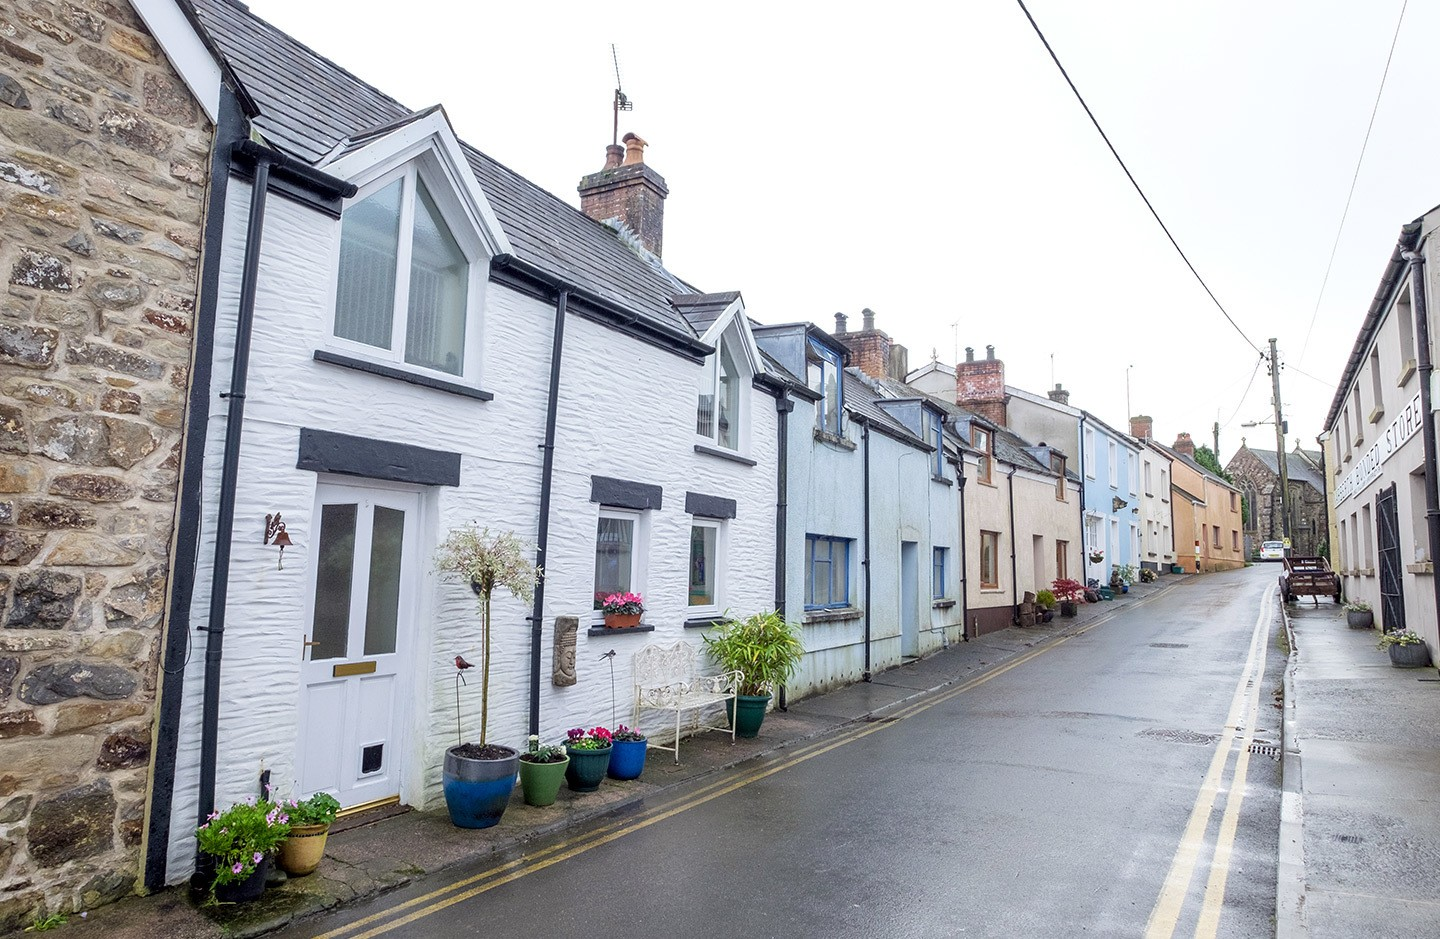 Narbeth in Pembrokeshire, Wales